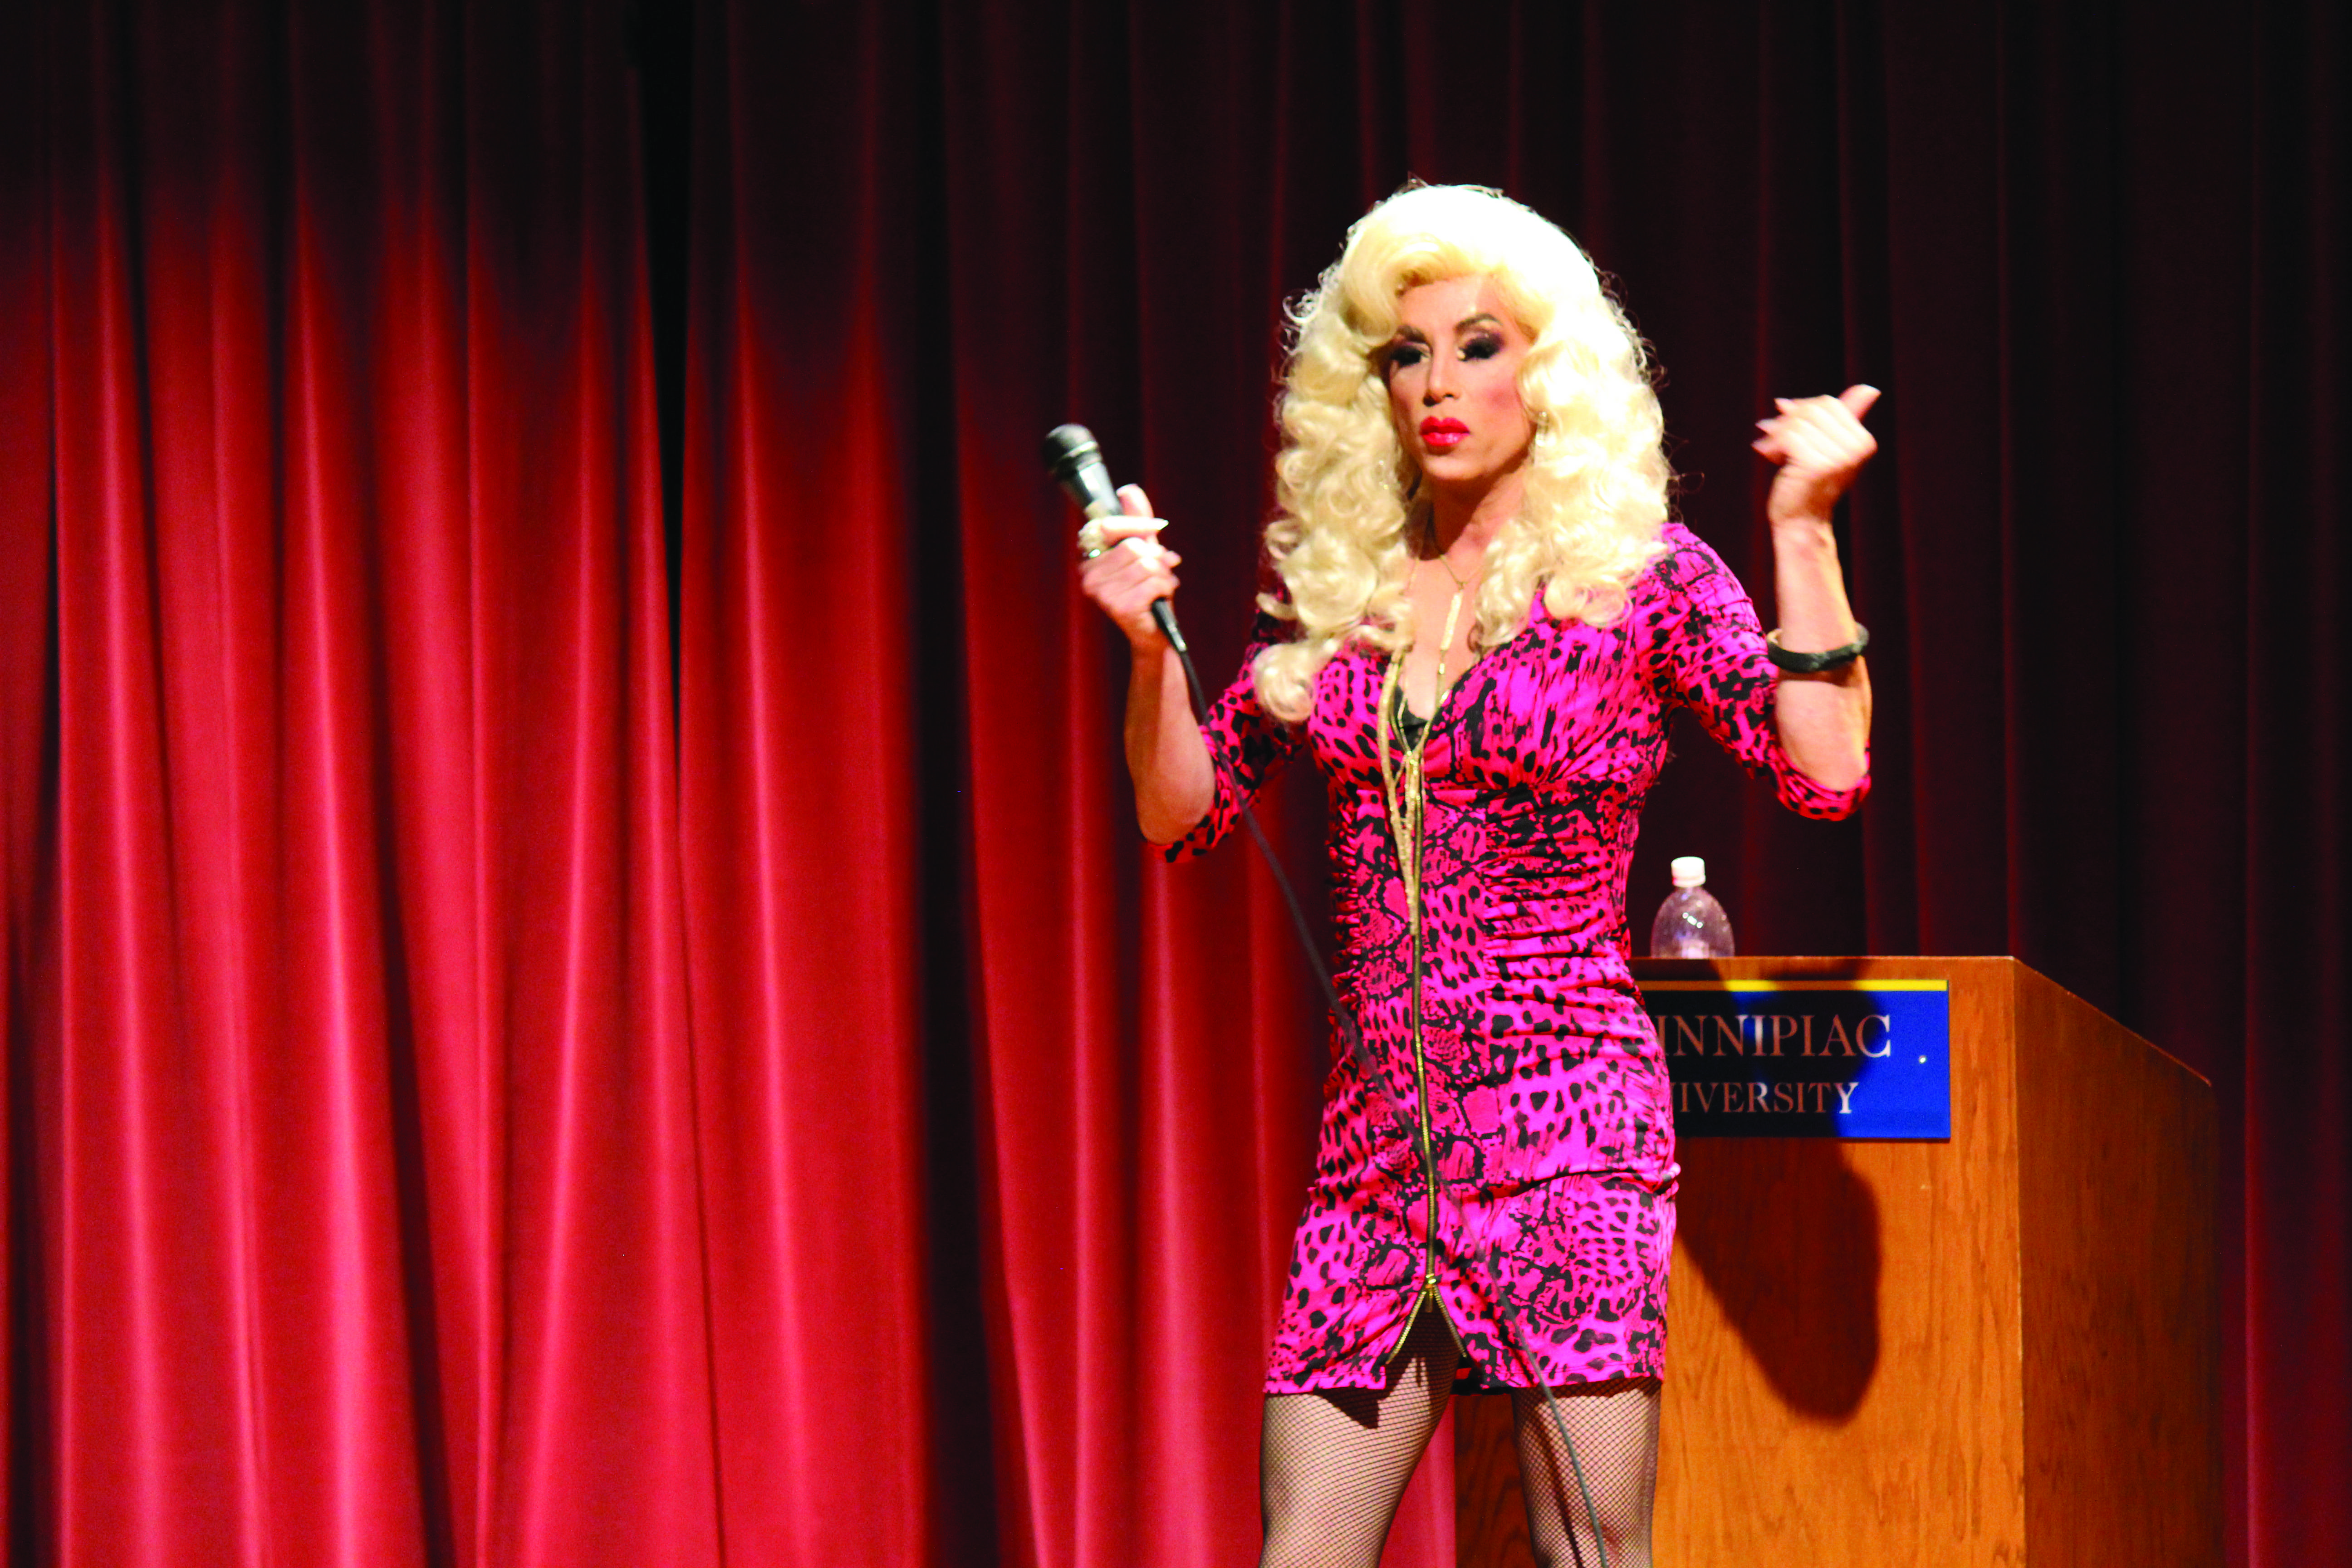 Drag queen Miss Sherry Vine shared the stage with the members of G.L.A.S.S.